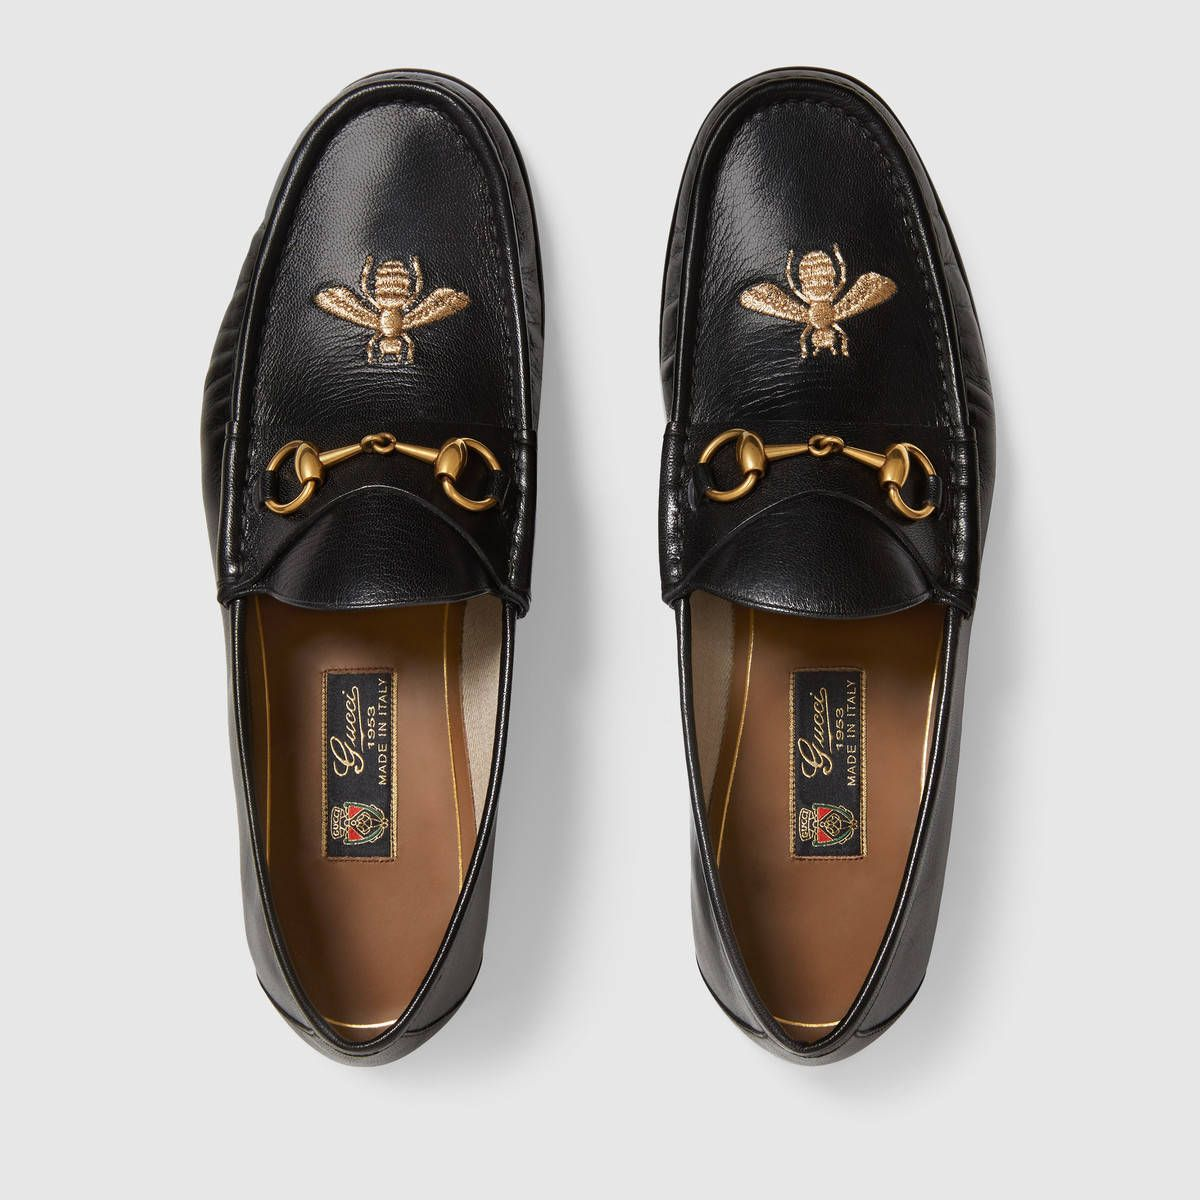 60fa09bbb9c Gucci Leather loafer with bee